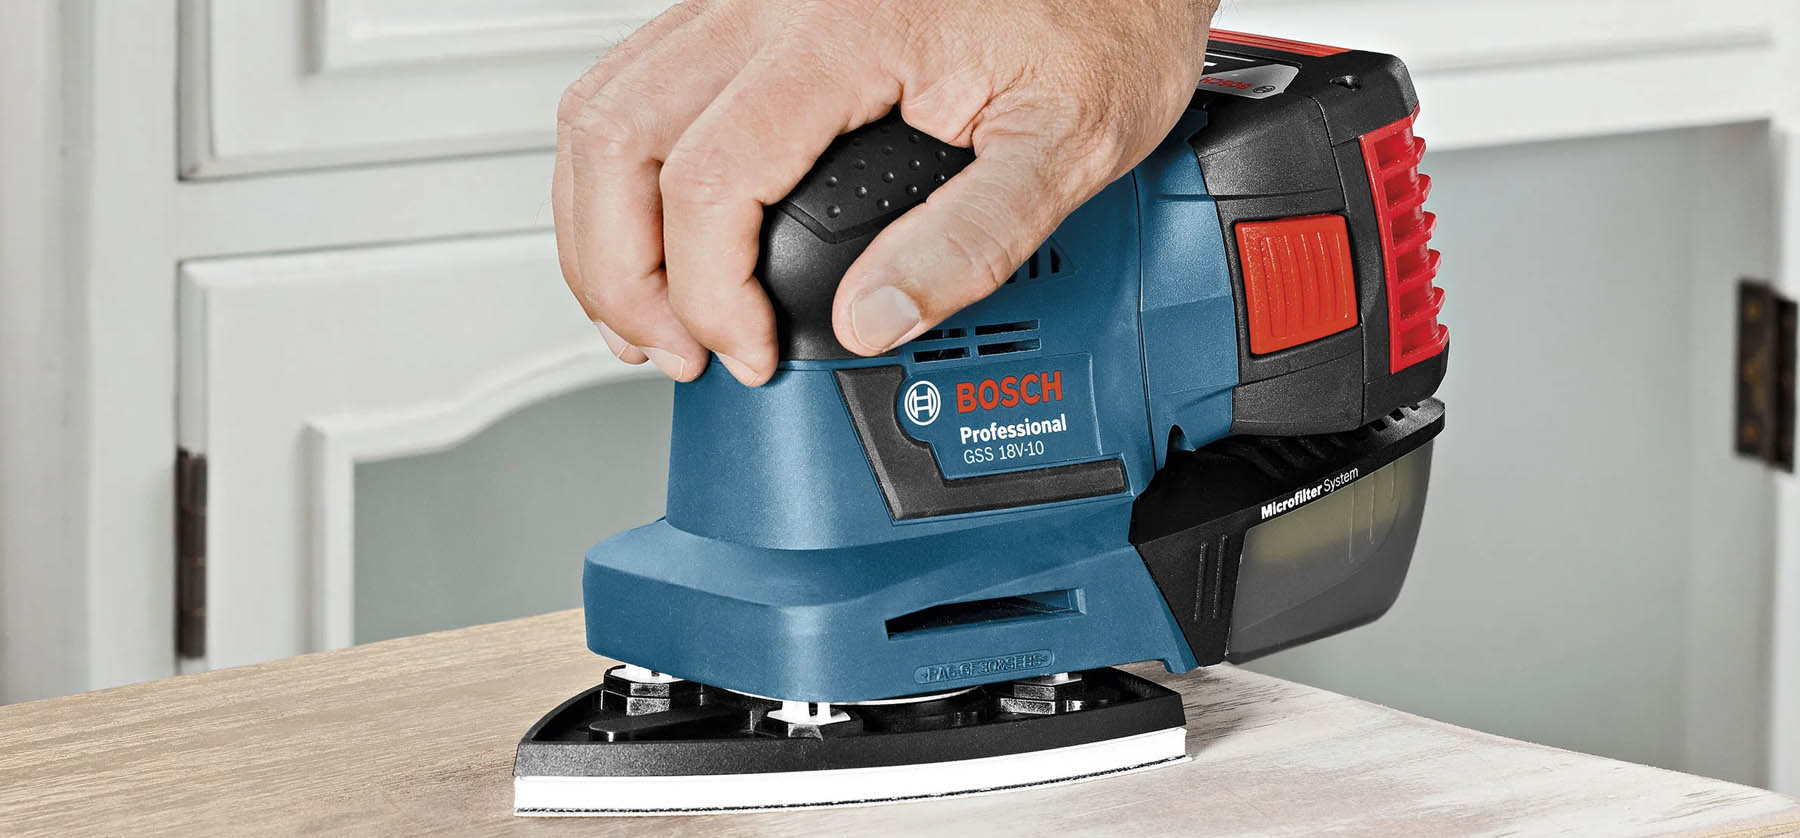 palm sander being used basic essential tools for woodworking beginners